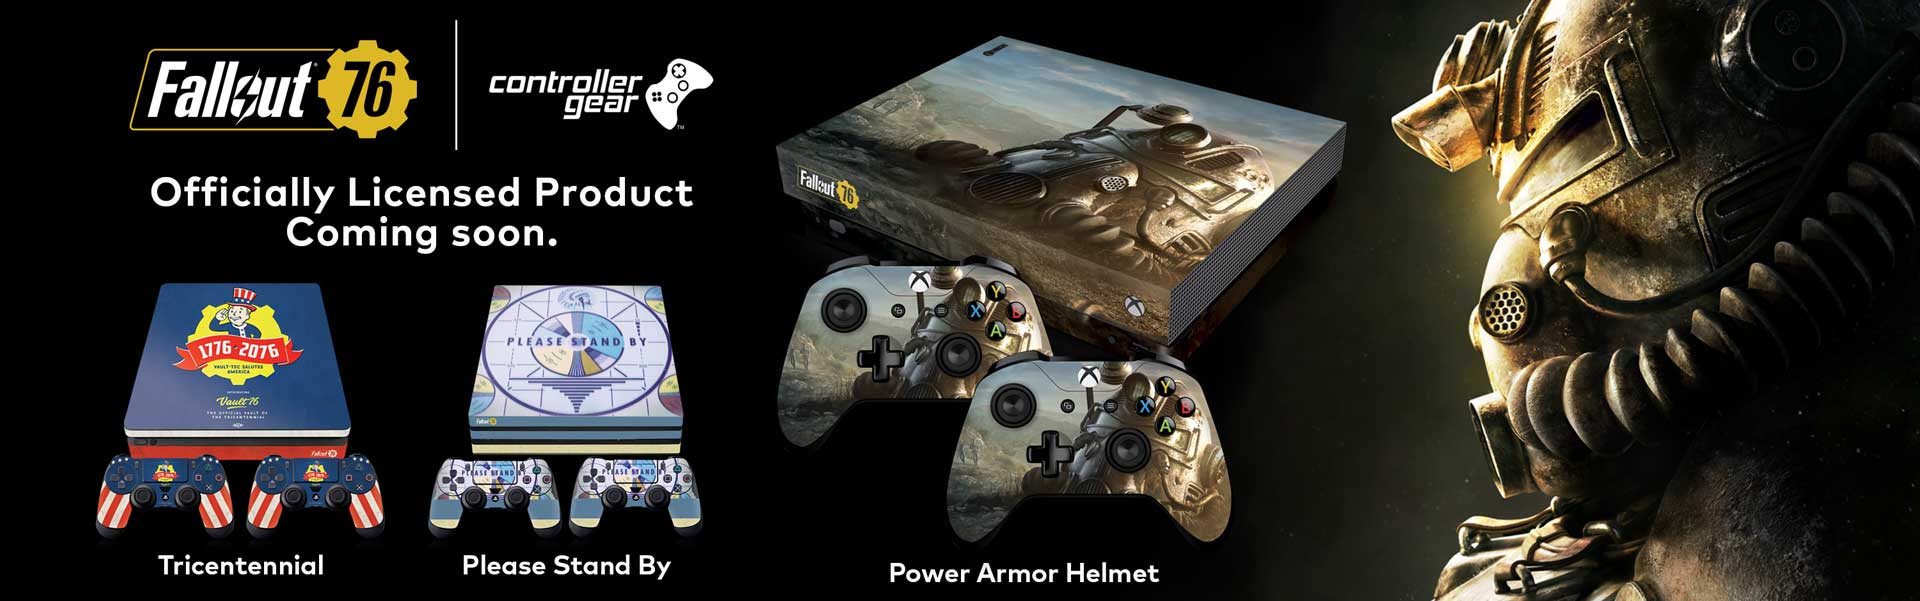 Fallout 76 Console Skins Now Available!